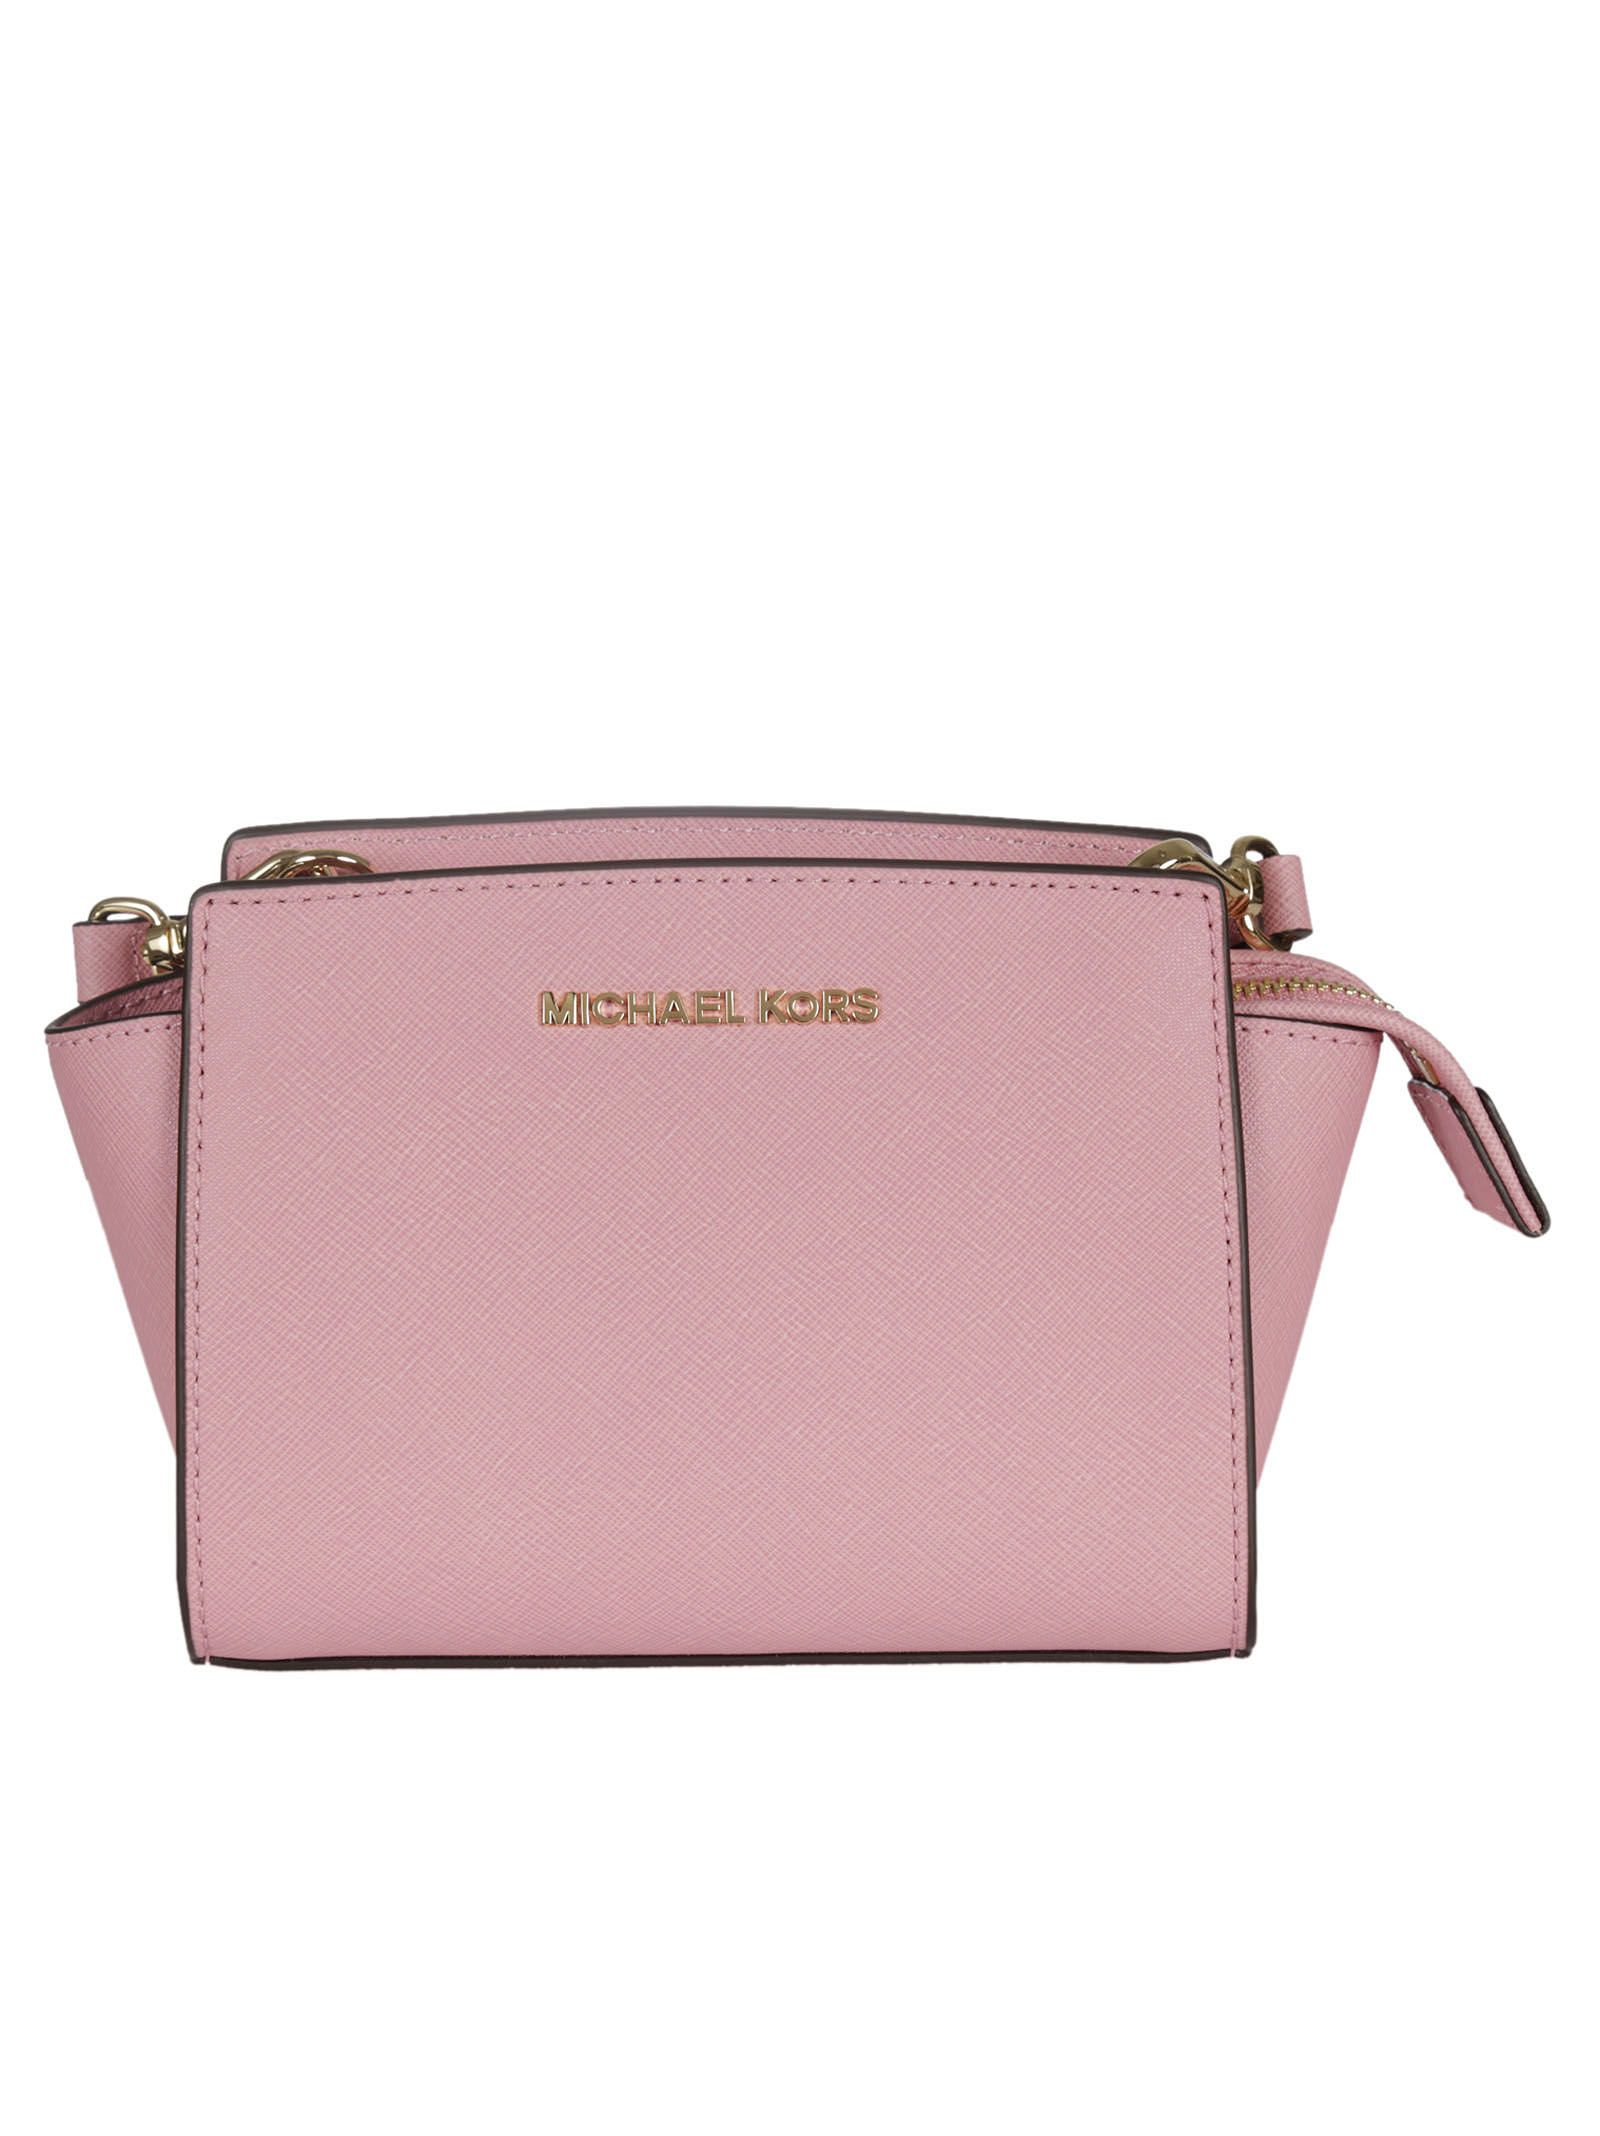 michael kors female 123825 misty rose selma mini messenger